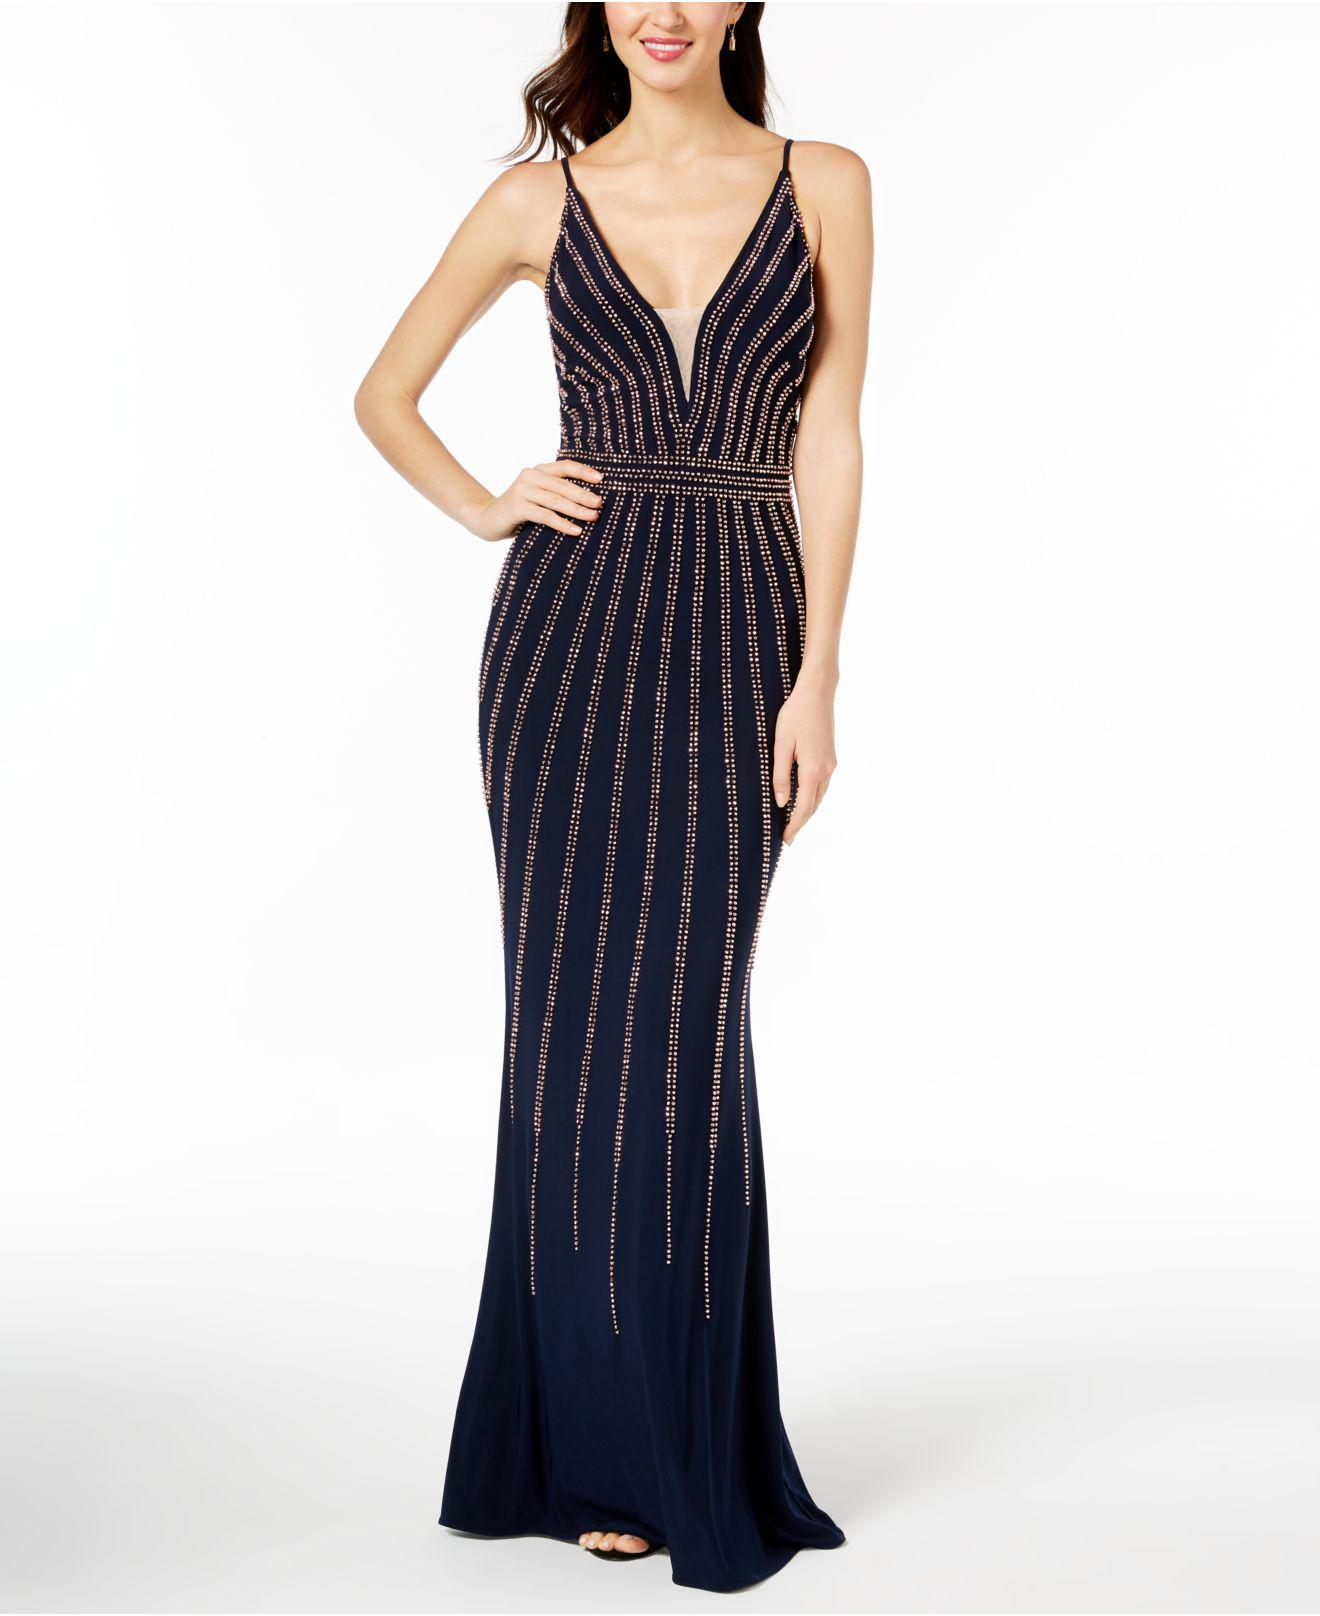 Lyst - Xscape Beaded V-neck Gown, Regular & Petite Sizes in Blue